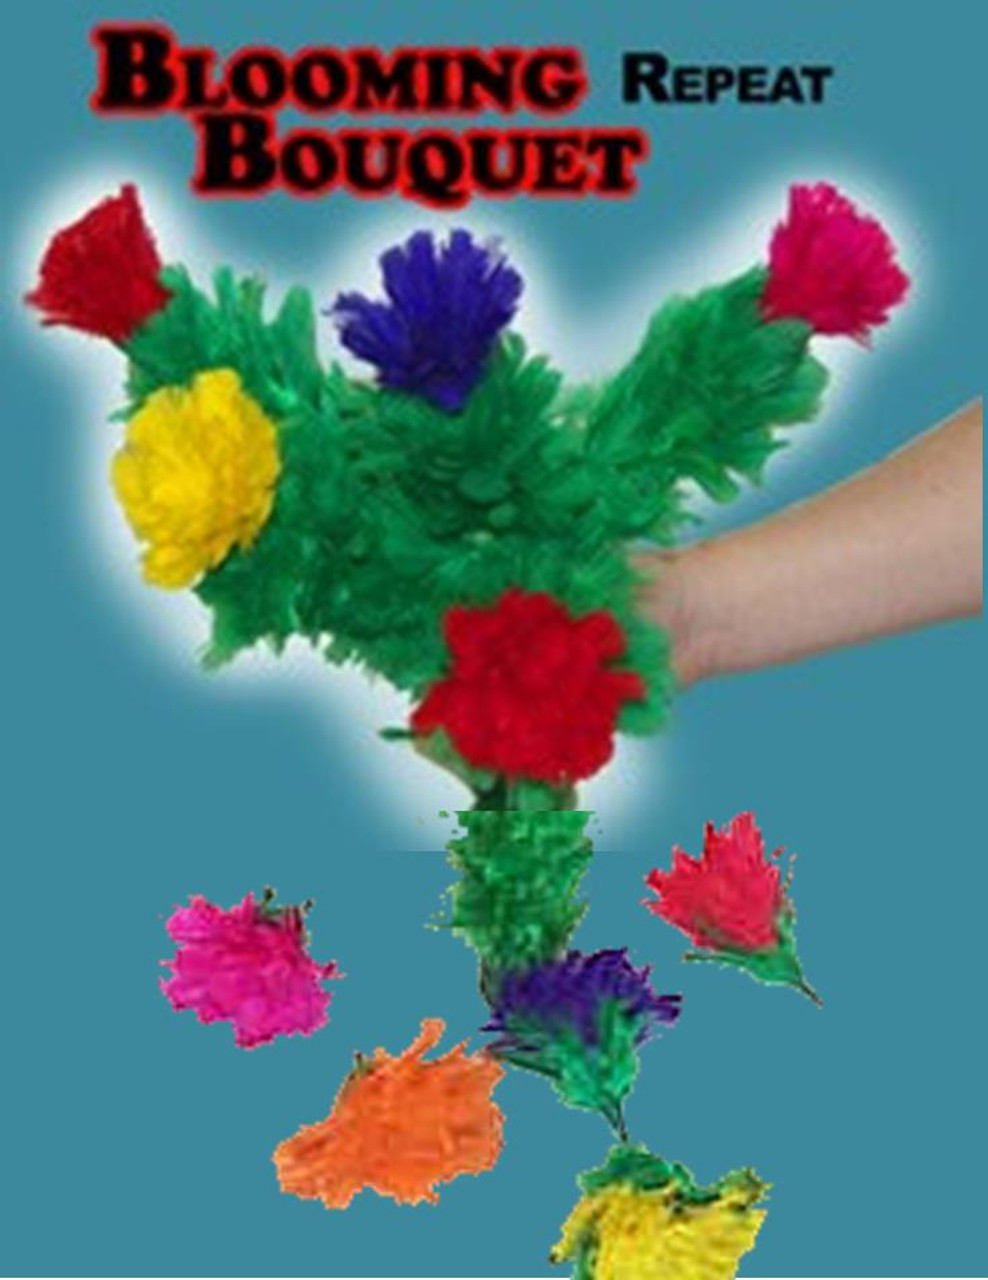 5 flower Repeat Blooming Bouquet Magic Trick